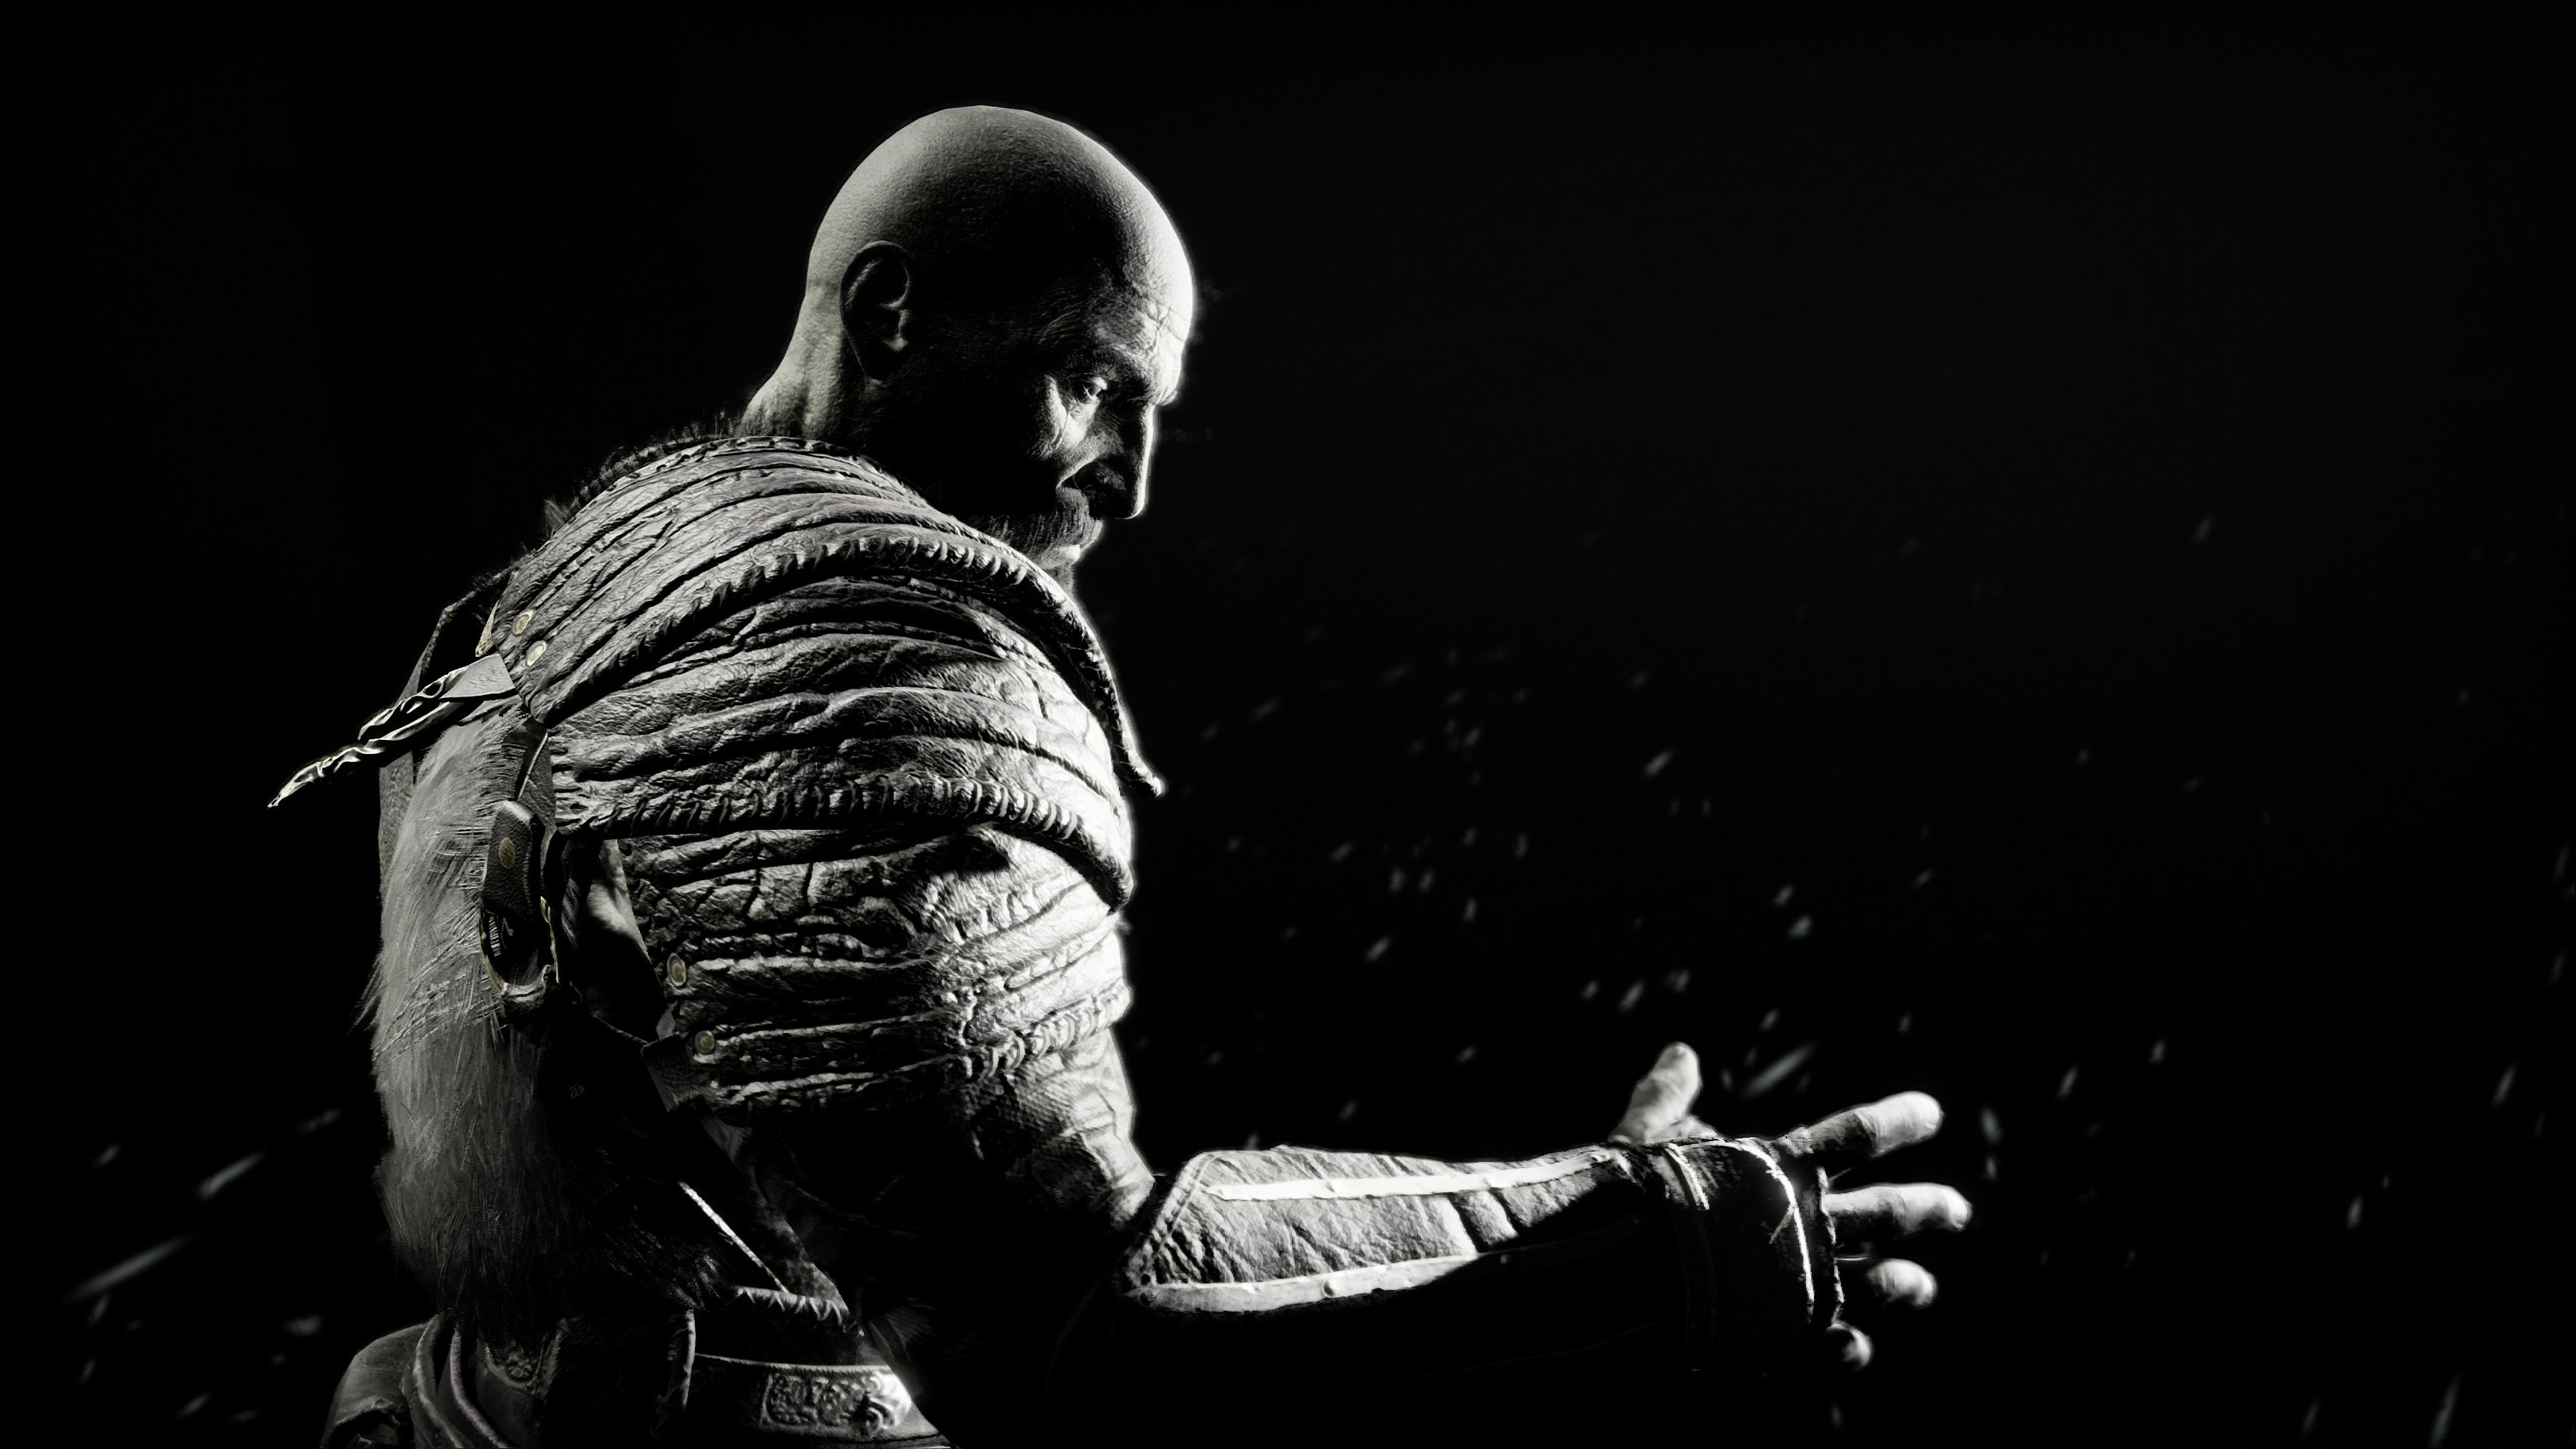 Cute Wallpaper Black And White Birds Kratos In God Of War 4k Hd Games 4k Wallpapers Images